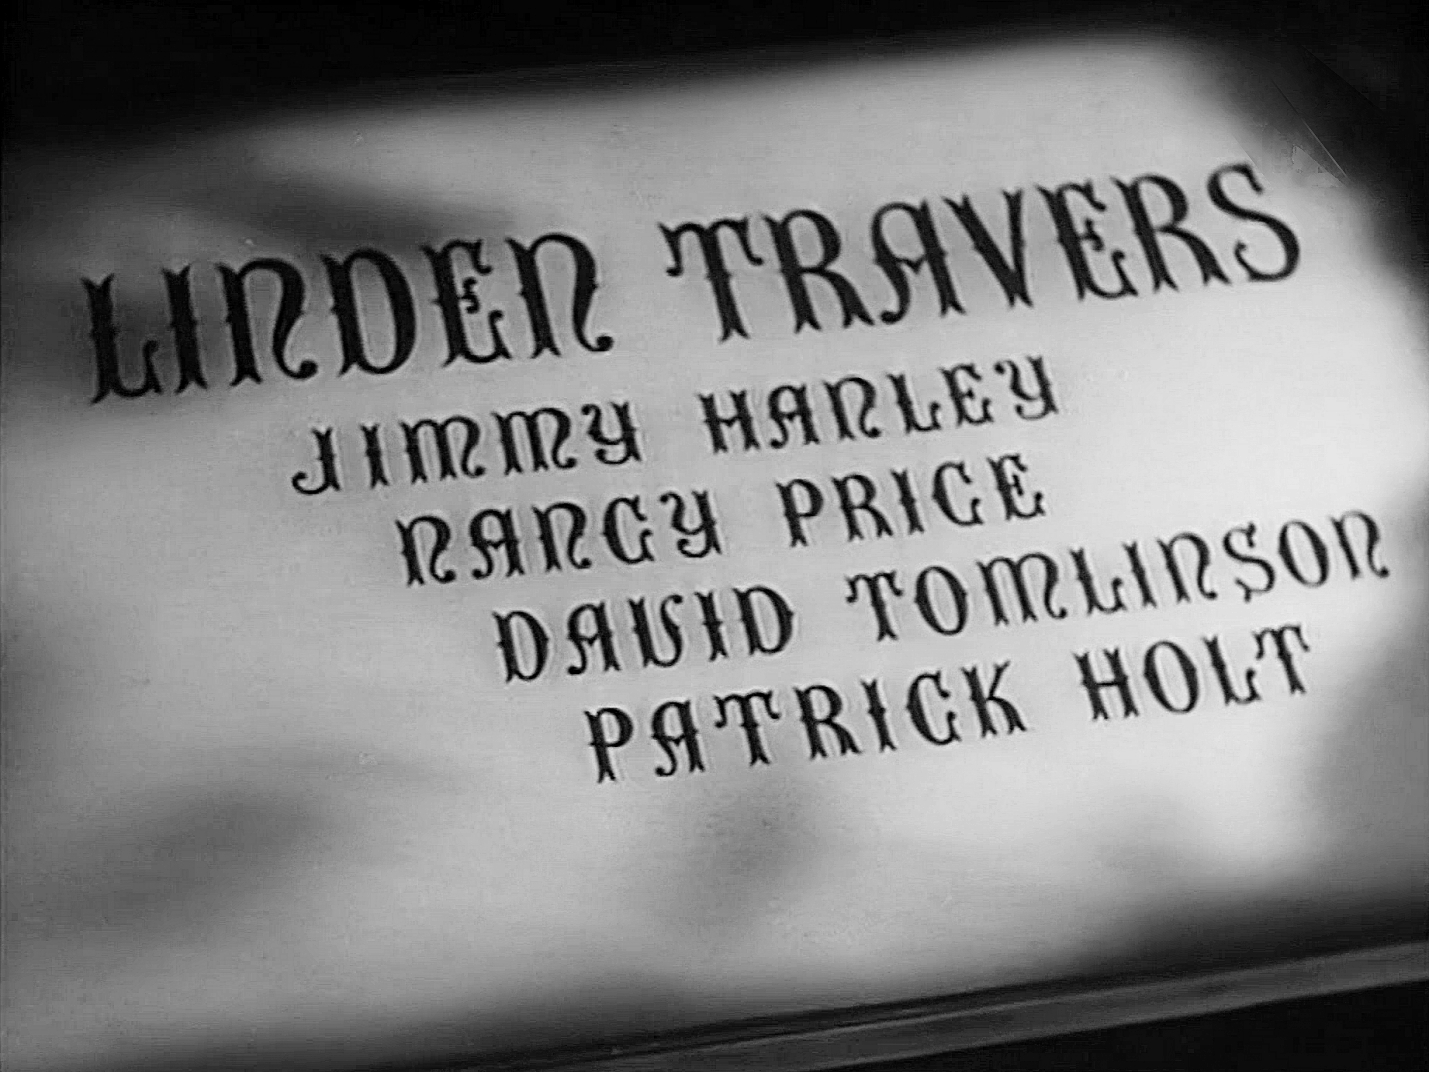 Main title from The Master of Bankdam (1947) (9). Linden Travers, Jimmy Hanley, Nancy Price, David Tomlinson, Patrick Holt